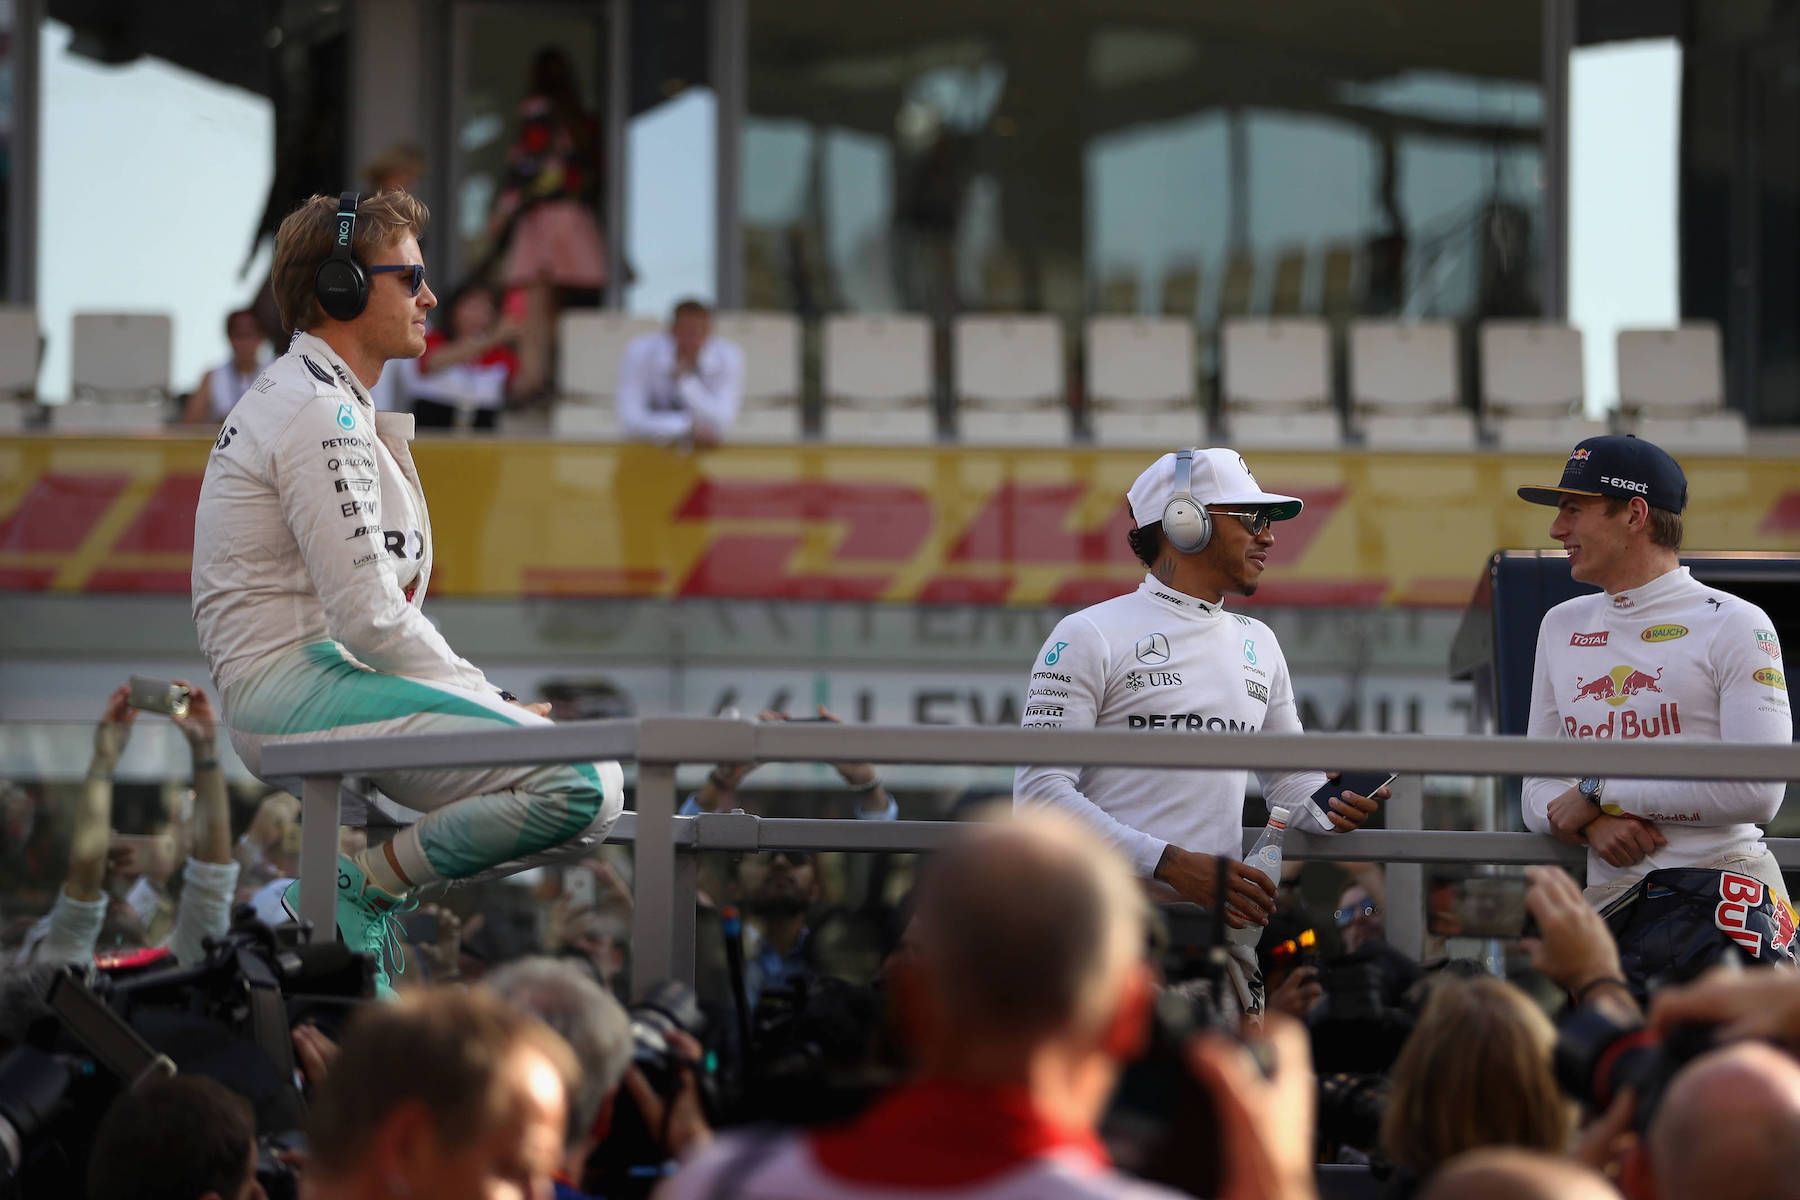 Salracing - Nico Rosberg, Lewis Hamilton and Max Verstappen during the Drivers' Parade